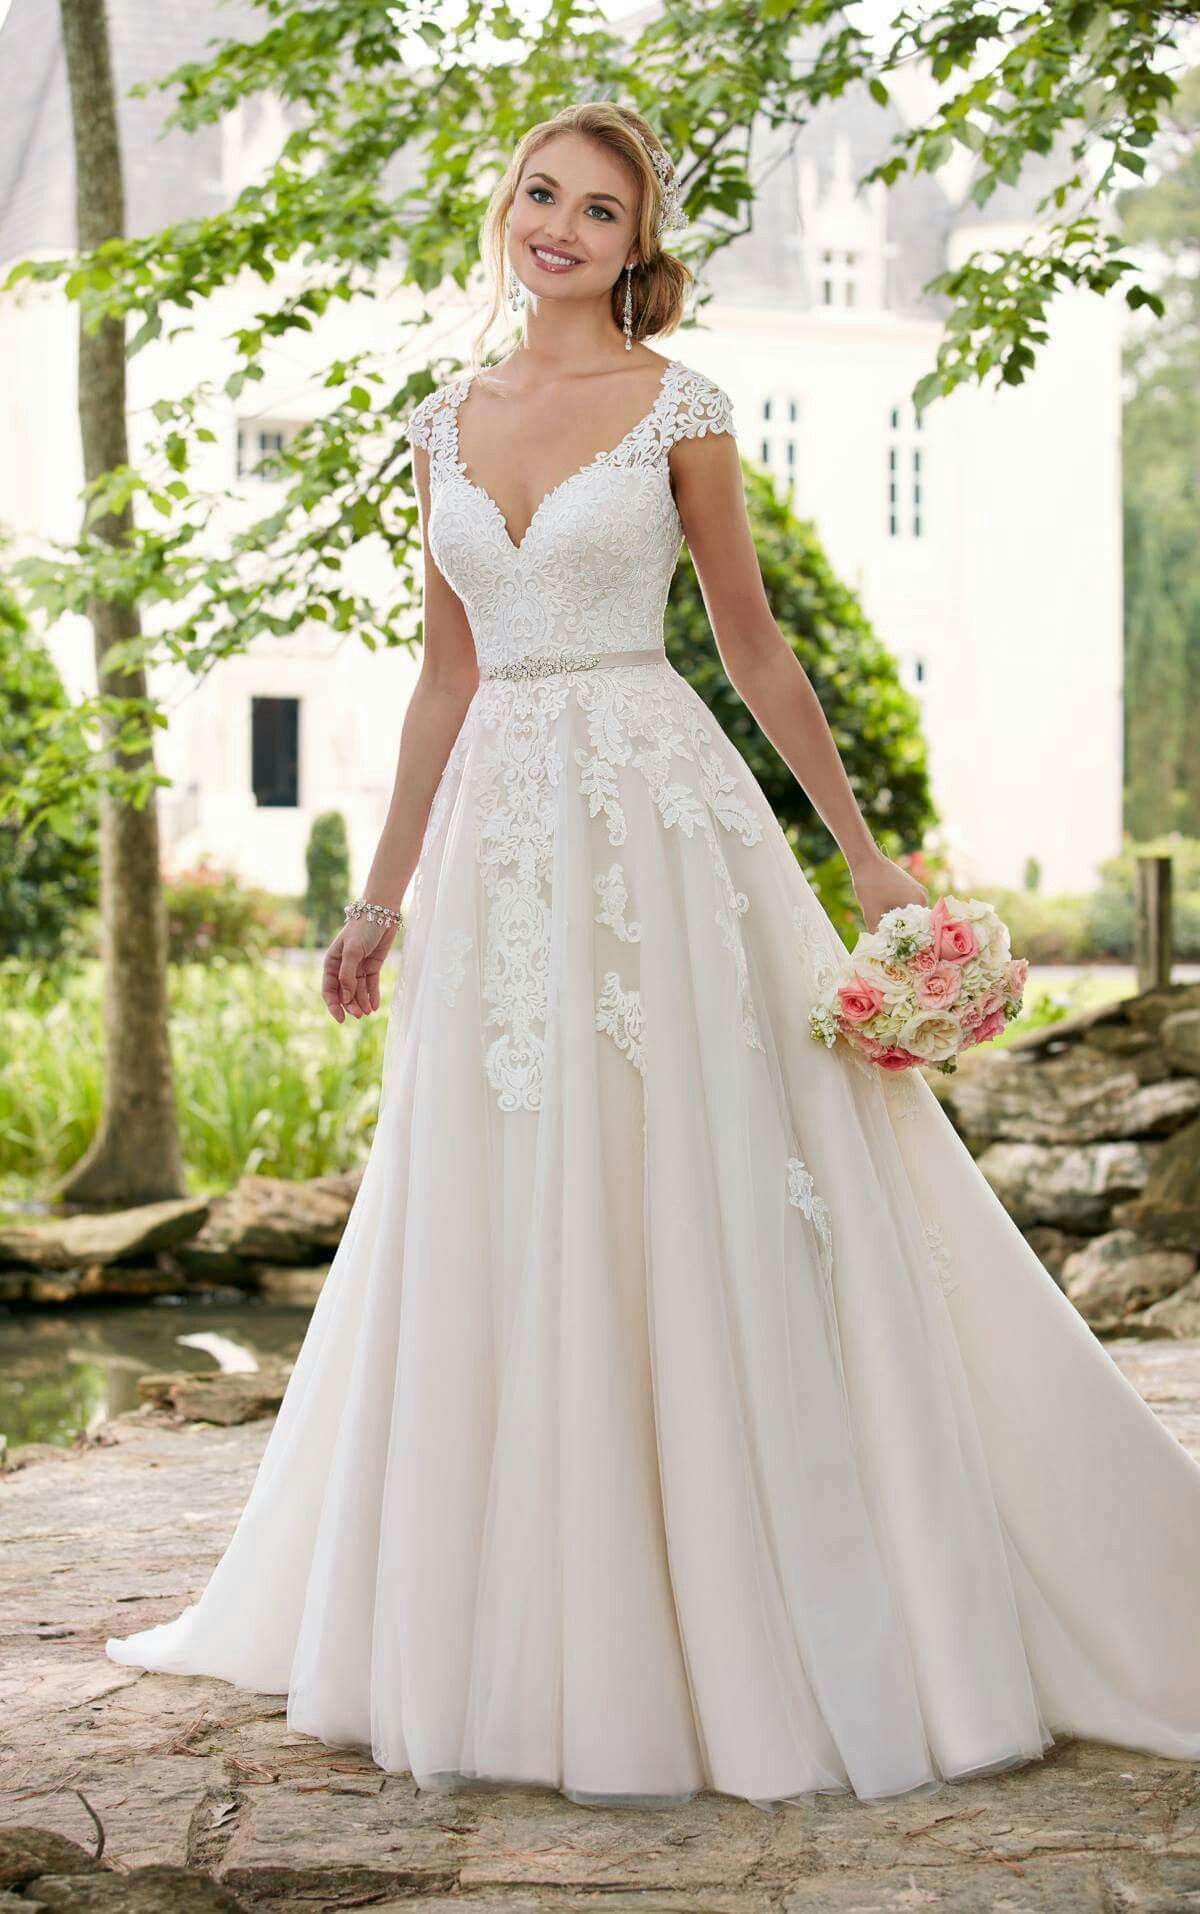 Pin by tabitha baldwin on wedding dress pinterest wedding dress